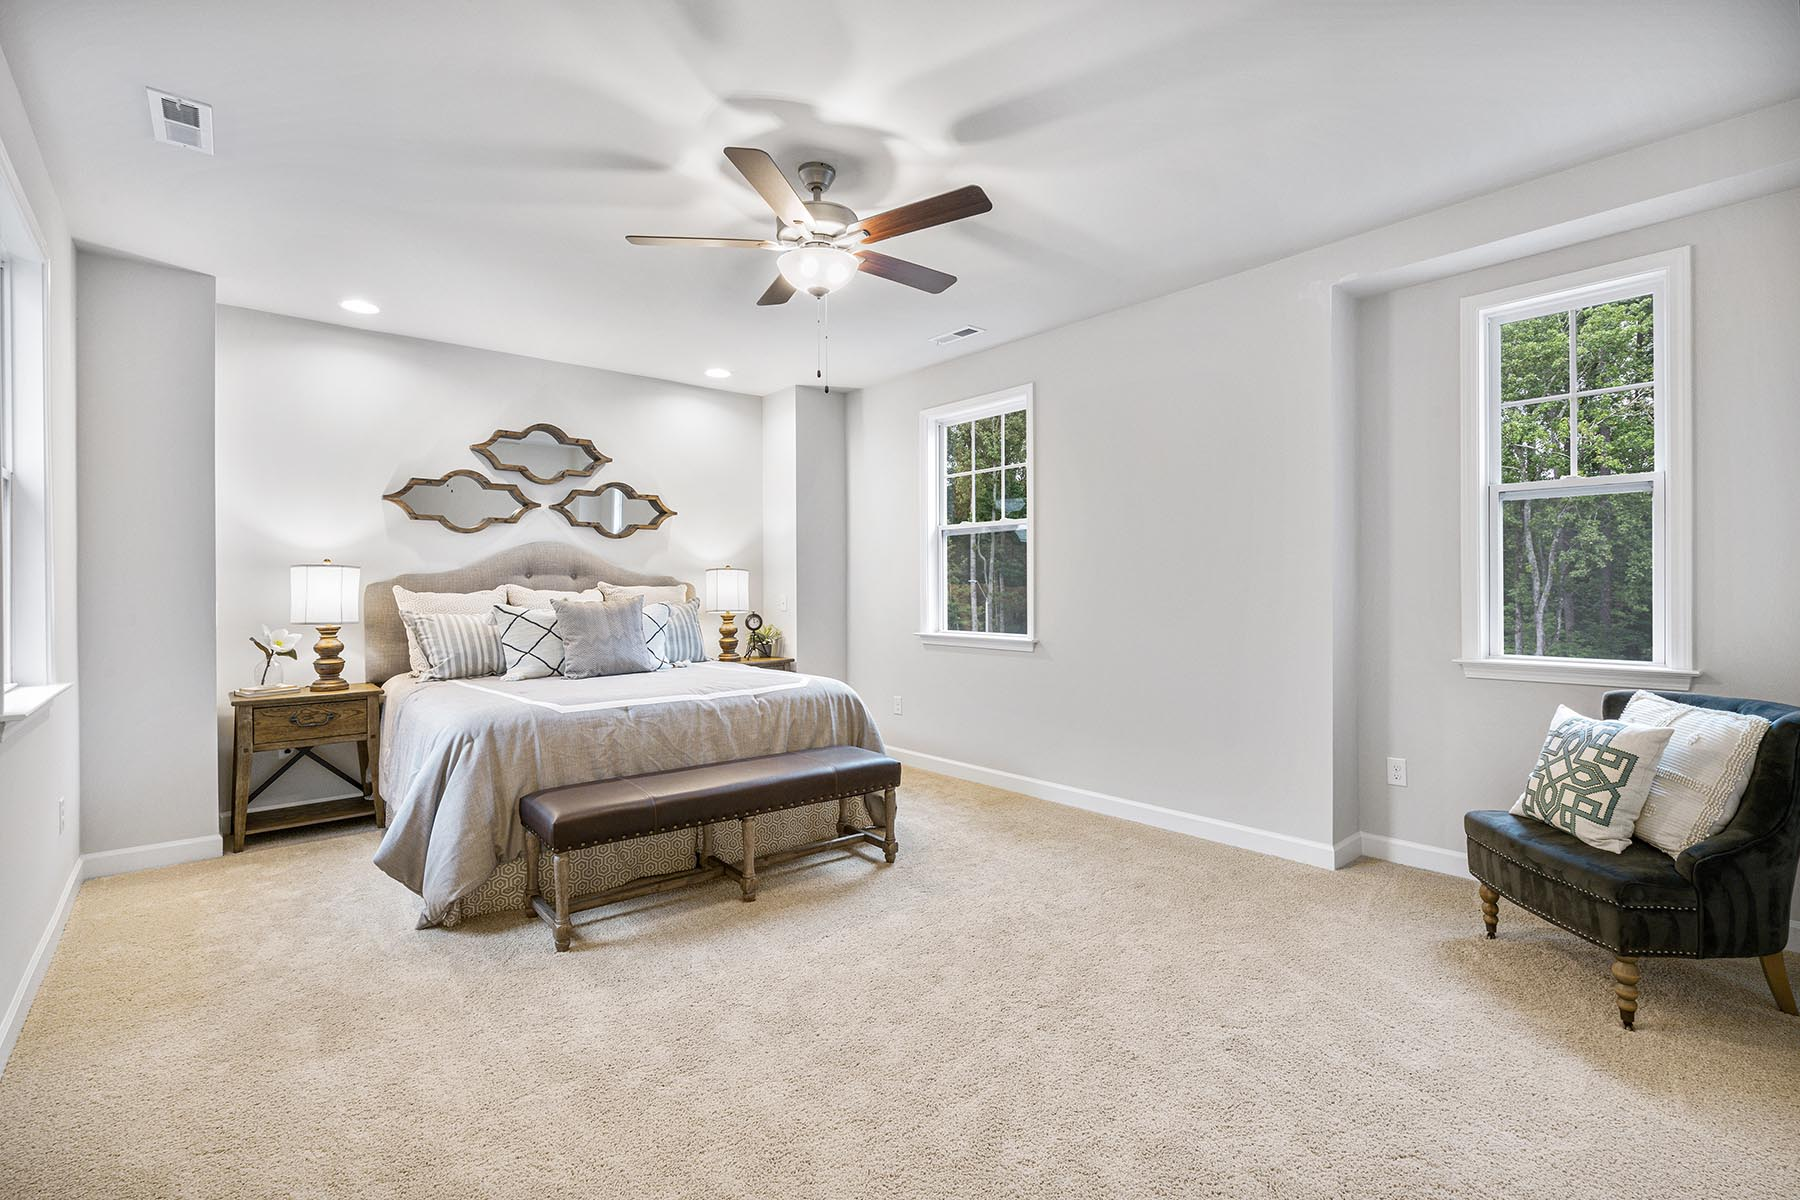 Kendrick Plan Bedroom at Portofino in Clayton North Carolina by Mattamy Homes